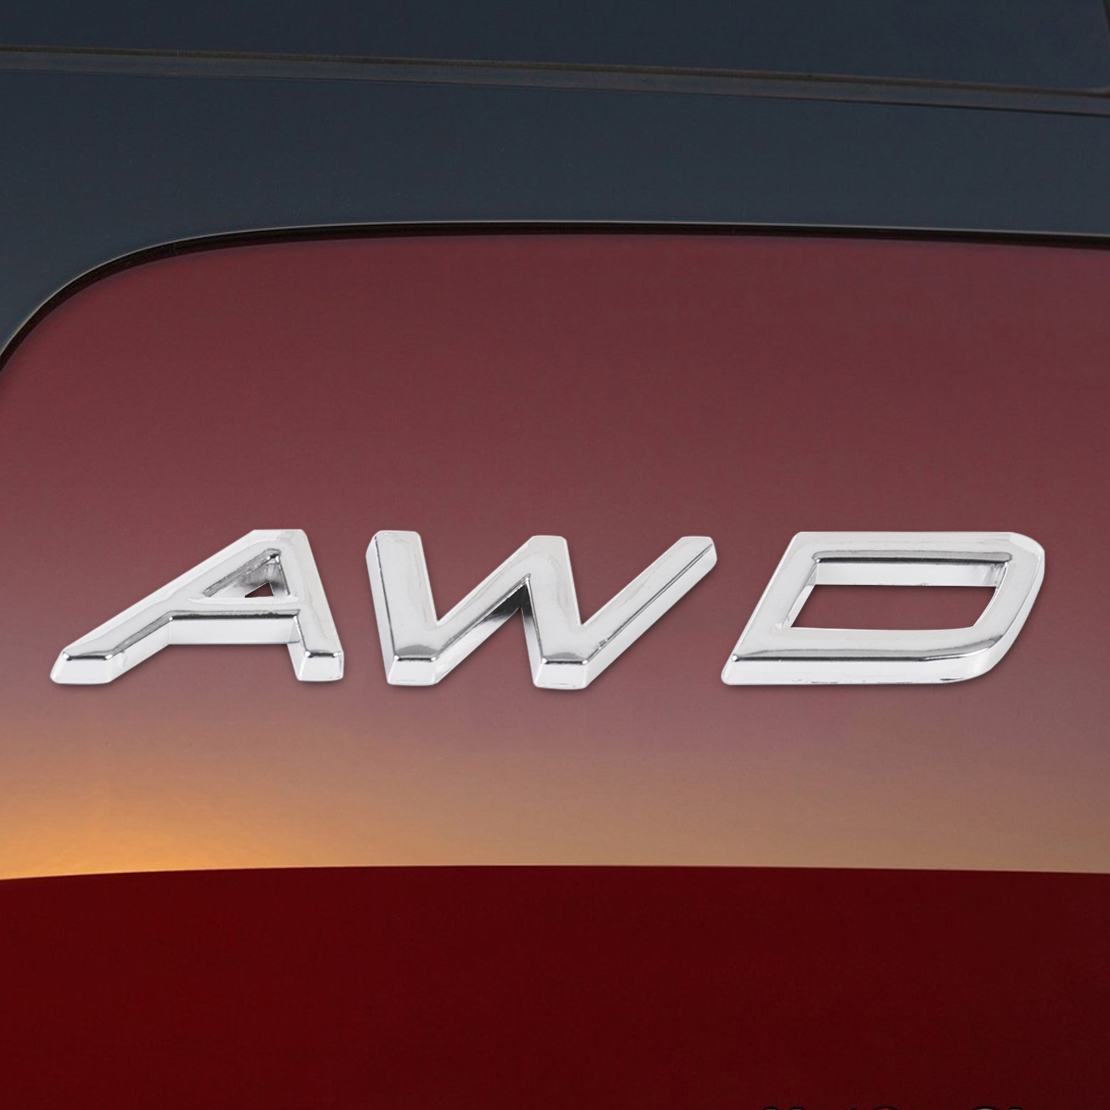 CITALL 1Pc 3D AWD Badge <font><b>Emblem</b></font> Sticker Decal Fit for Car Auto All Wheel <font><b>Drive</b></font> SUV Off Road Jeep for <font><b>BMW</b></font> Audi Ford Nissan image